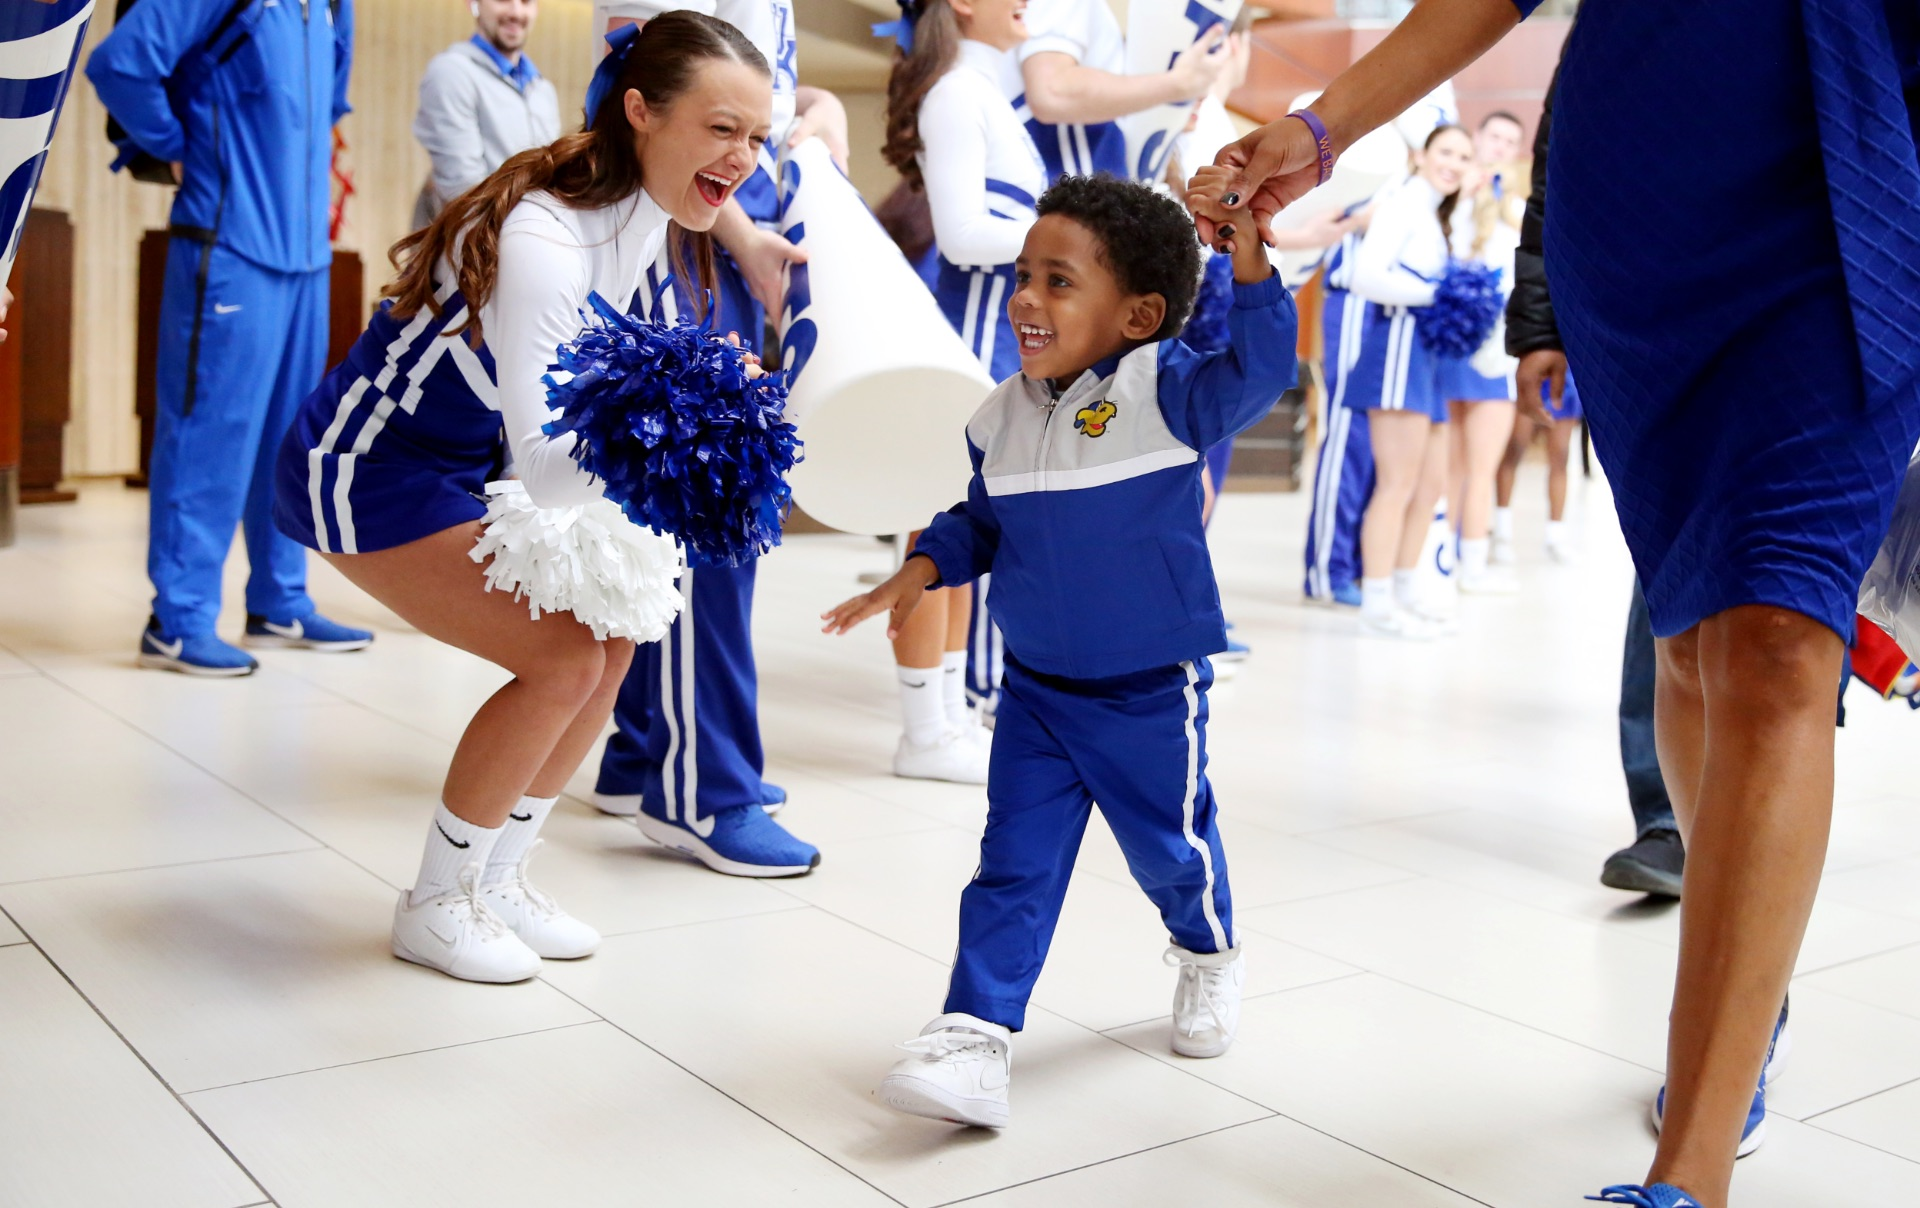 Jackson walks alongside his mother, Coach Kyra Elzy, with UK cheerleaders on one side cheering him on. He is smiling widely and wearing a blue and white tracksuit.